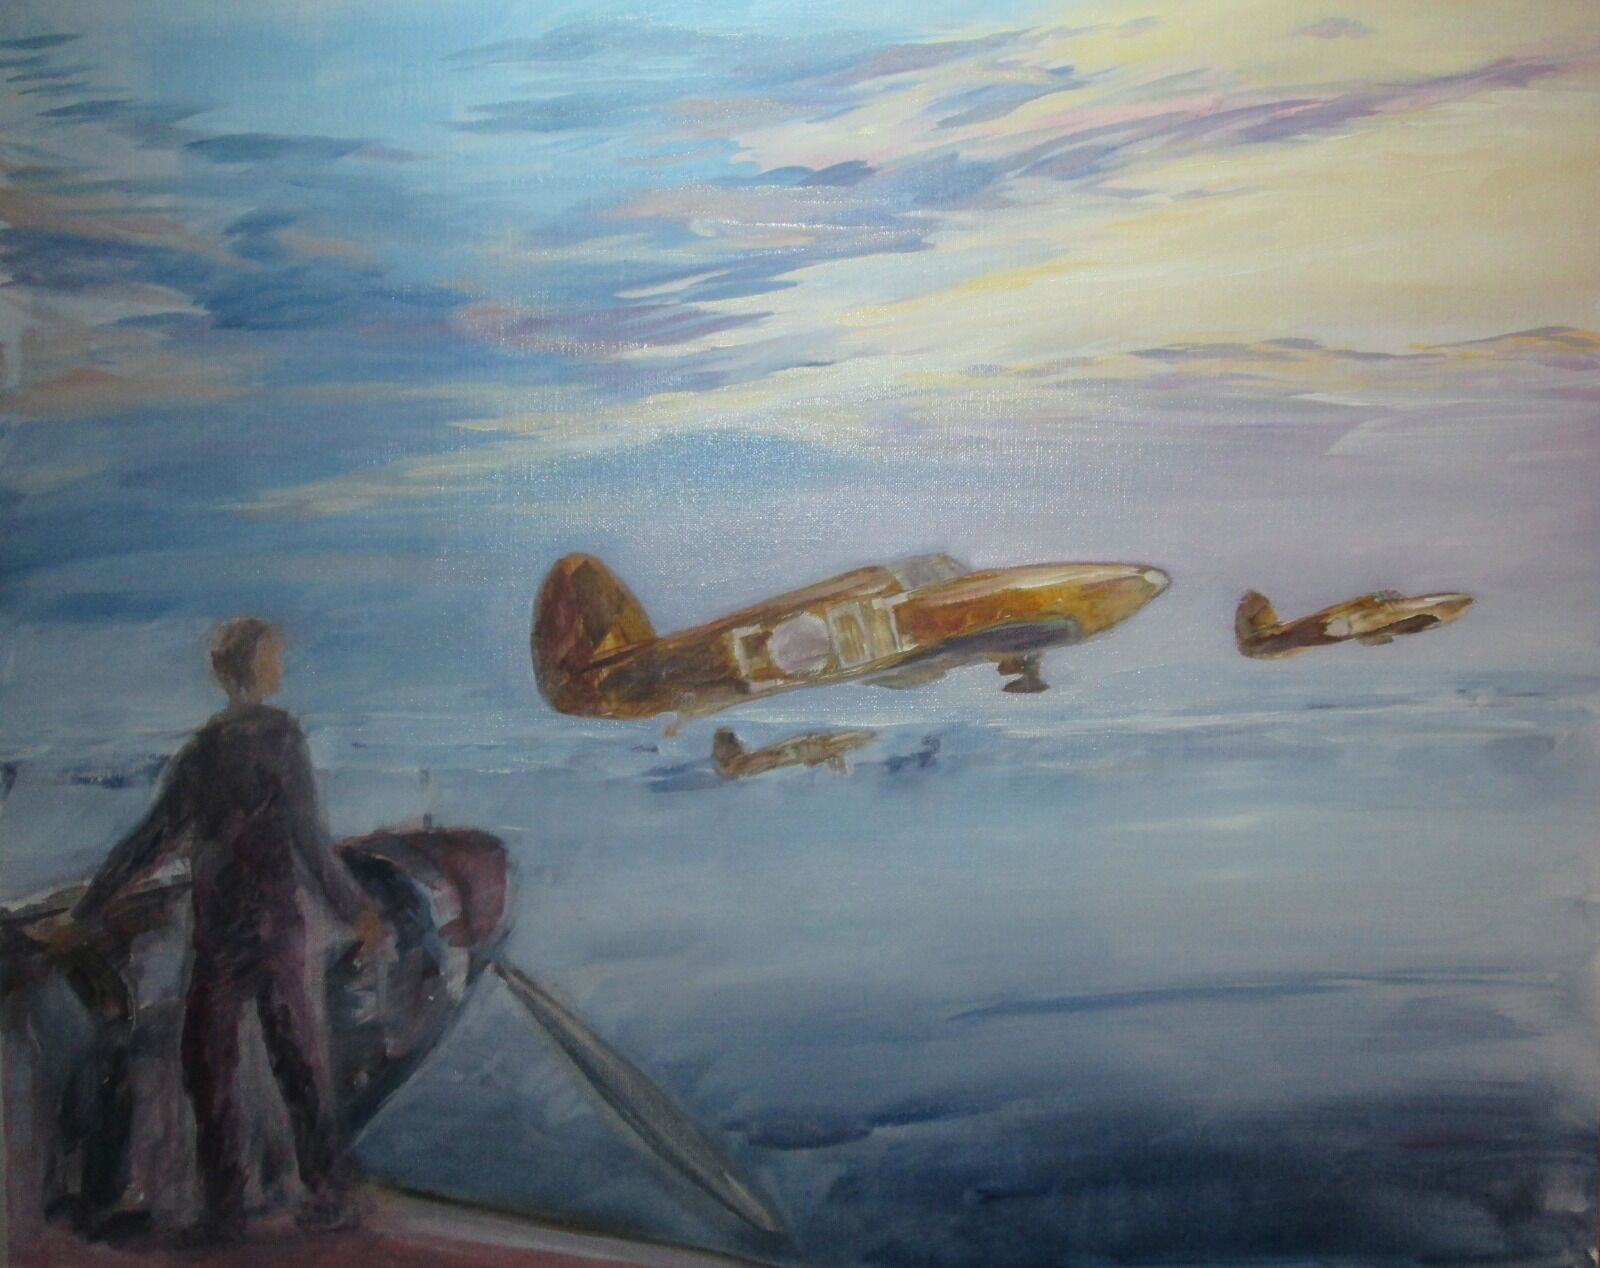 My painting featuring Sgt. Girdwood's Hurricane 'Long Day Ahead', near the start. I have started to work colour into the whole painting, working up the different parts together. (You can see the continuation of this process in the picture below showing the mahlstick in use.)